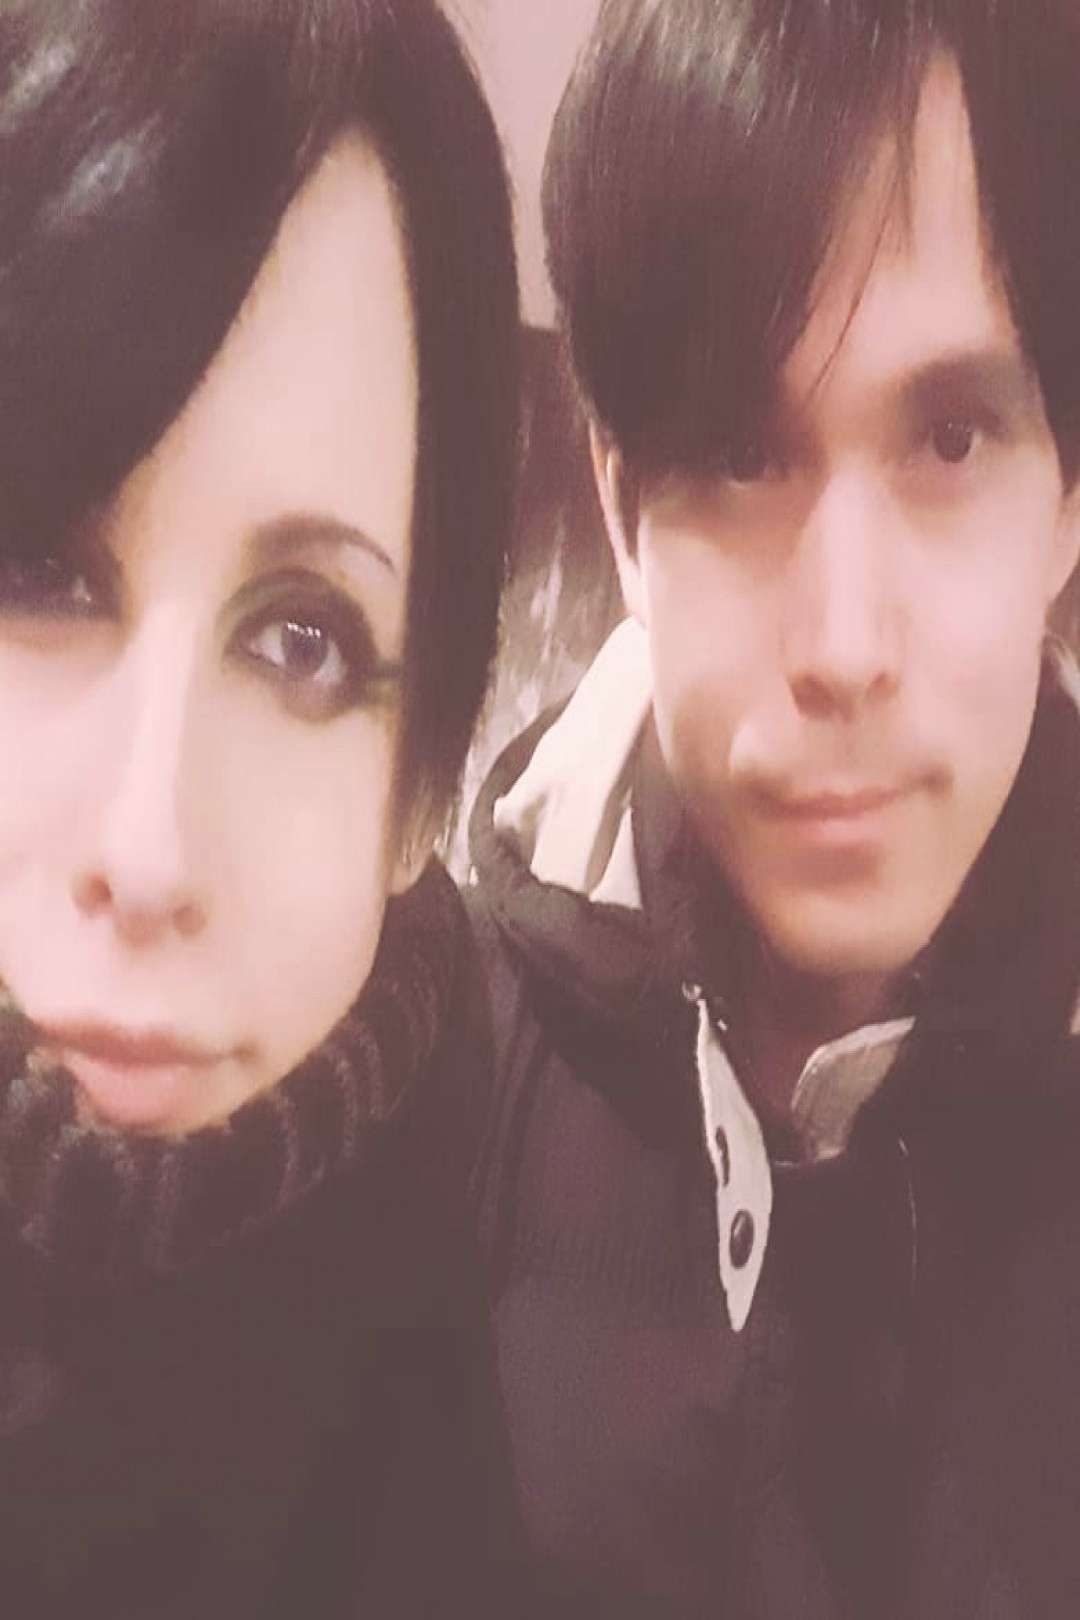 #peopleselfie #yesterday #closeup #night #with #and #2 Yesterday night with ありがとう . ヽ(゚▽゚*)乂(*゚▽You can find Curry soup and more on our website.Yesterday night with ありがとう . ヽ(゚▽゚*)乂(*゚▽